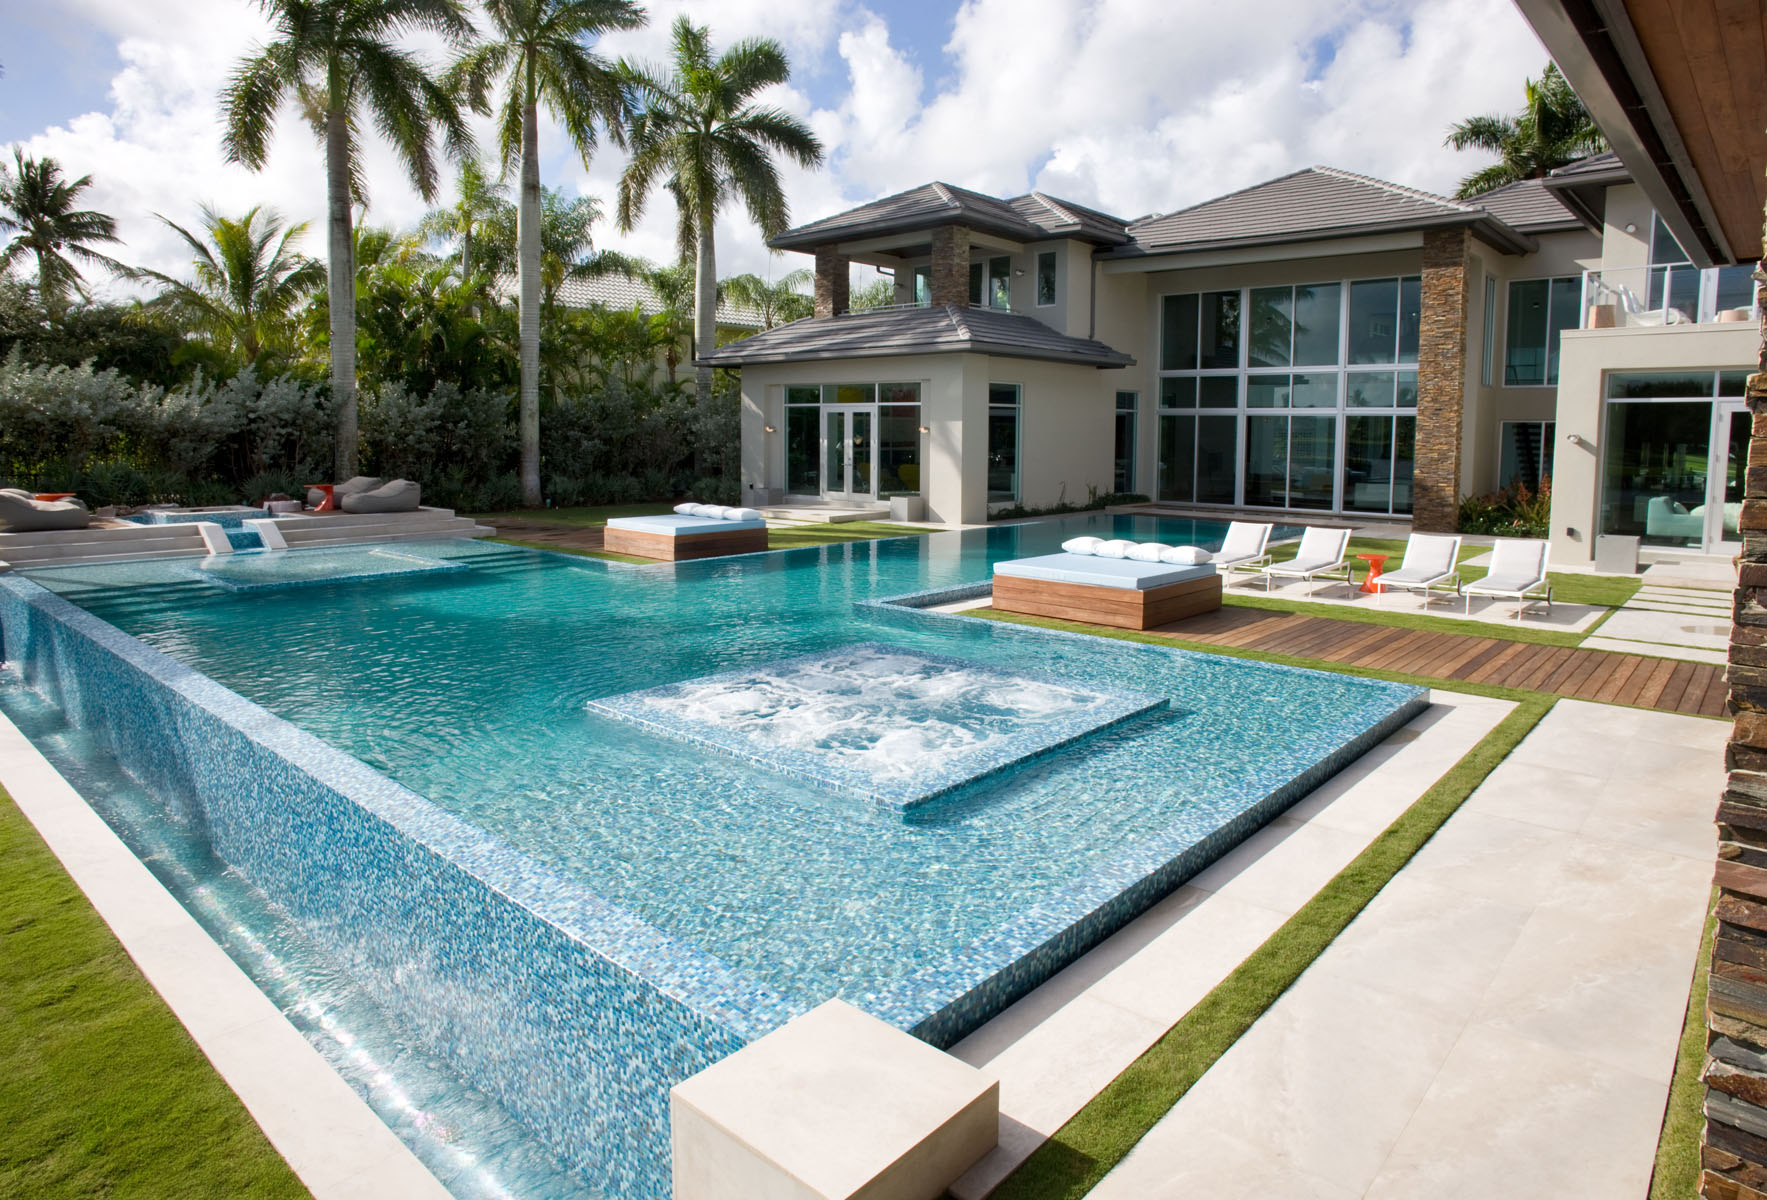 Glass Pool Tiles from Trend